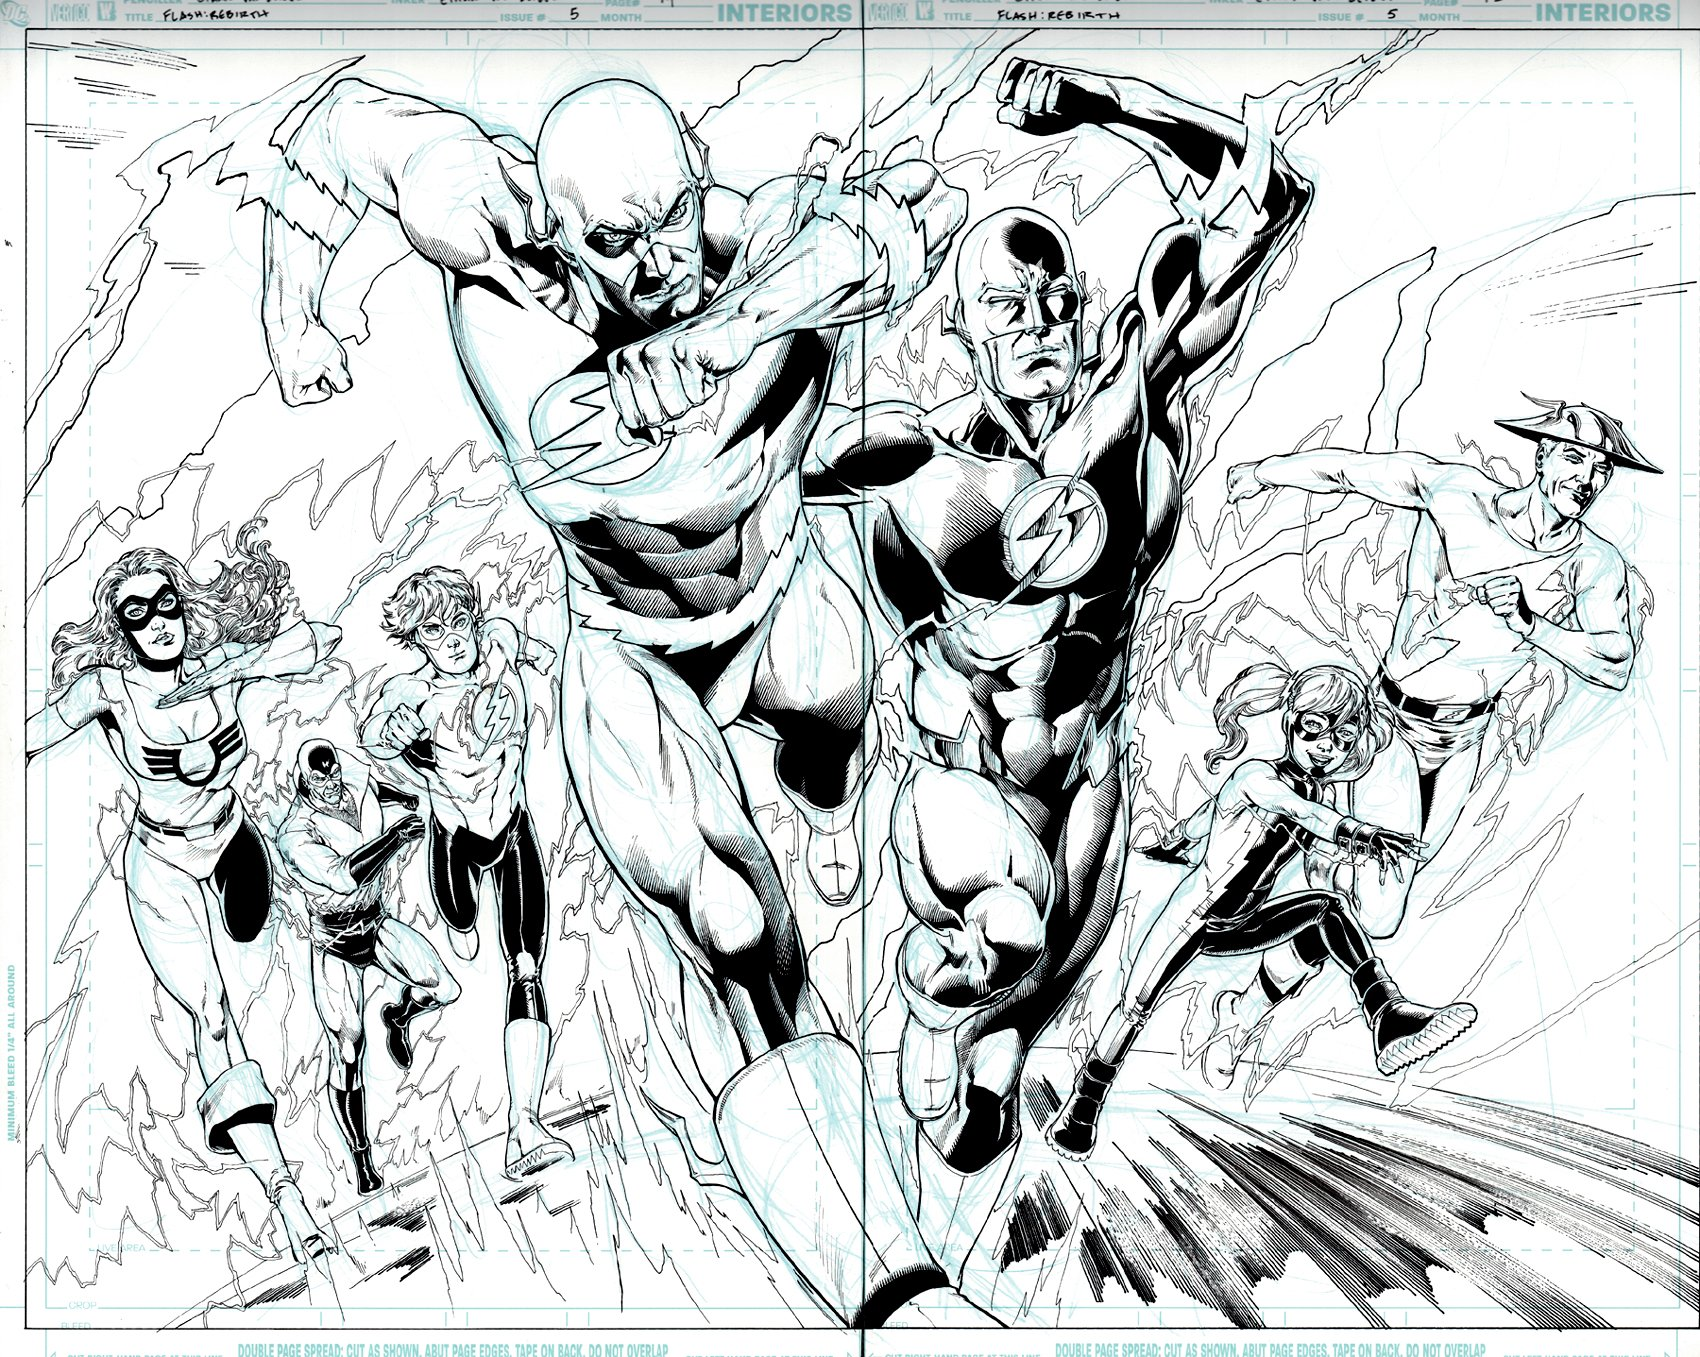 The Flash: Rebirth #5 p 14-15 (Awesome Flash Family Race, Double Spread Splash, 7 Heroes!) 2009